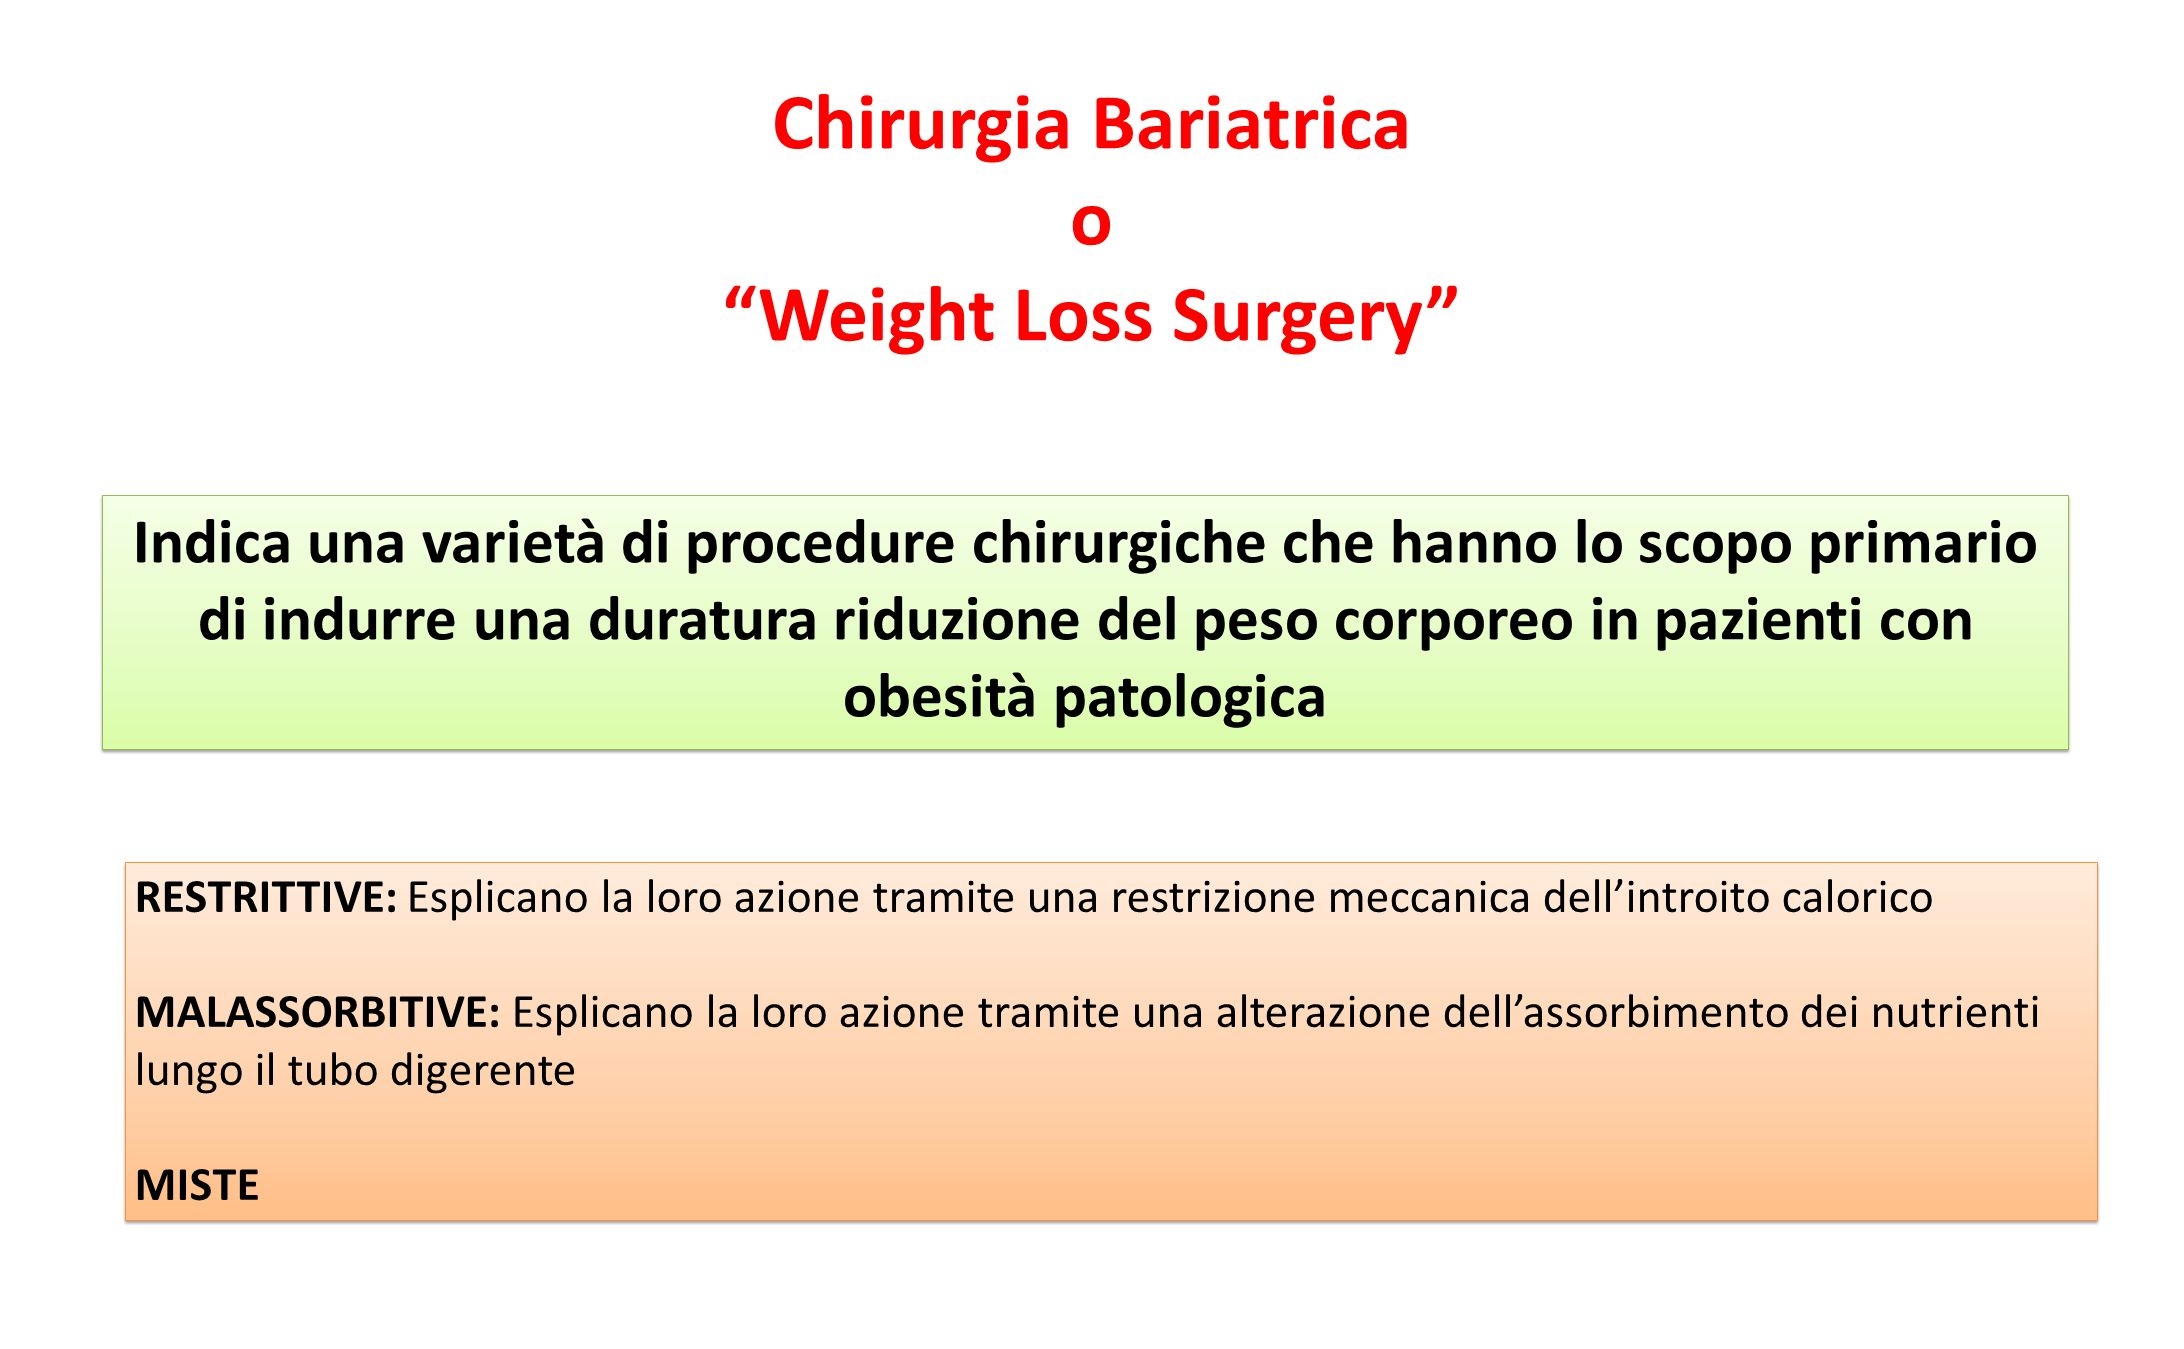 Chirurgia Bariatrica o Weight Loss Surgery